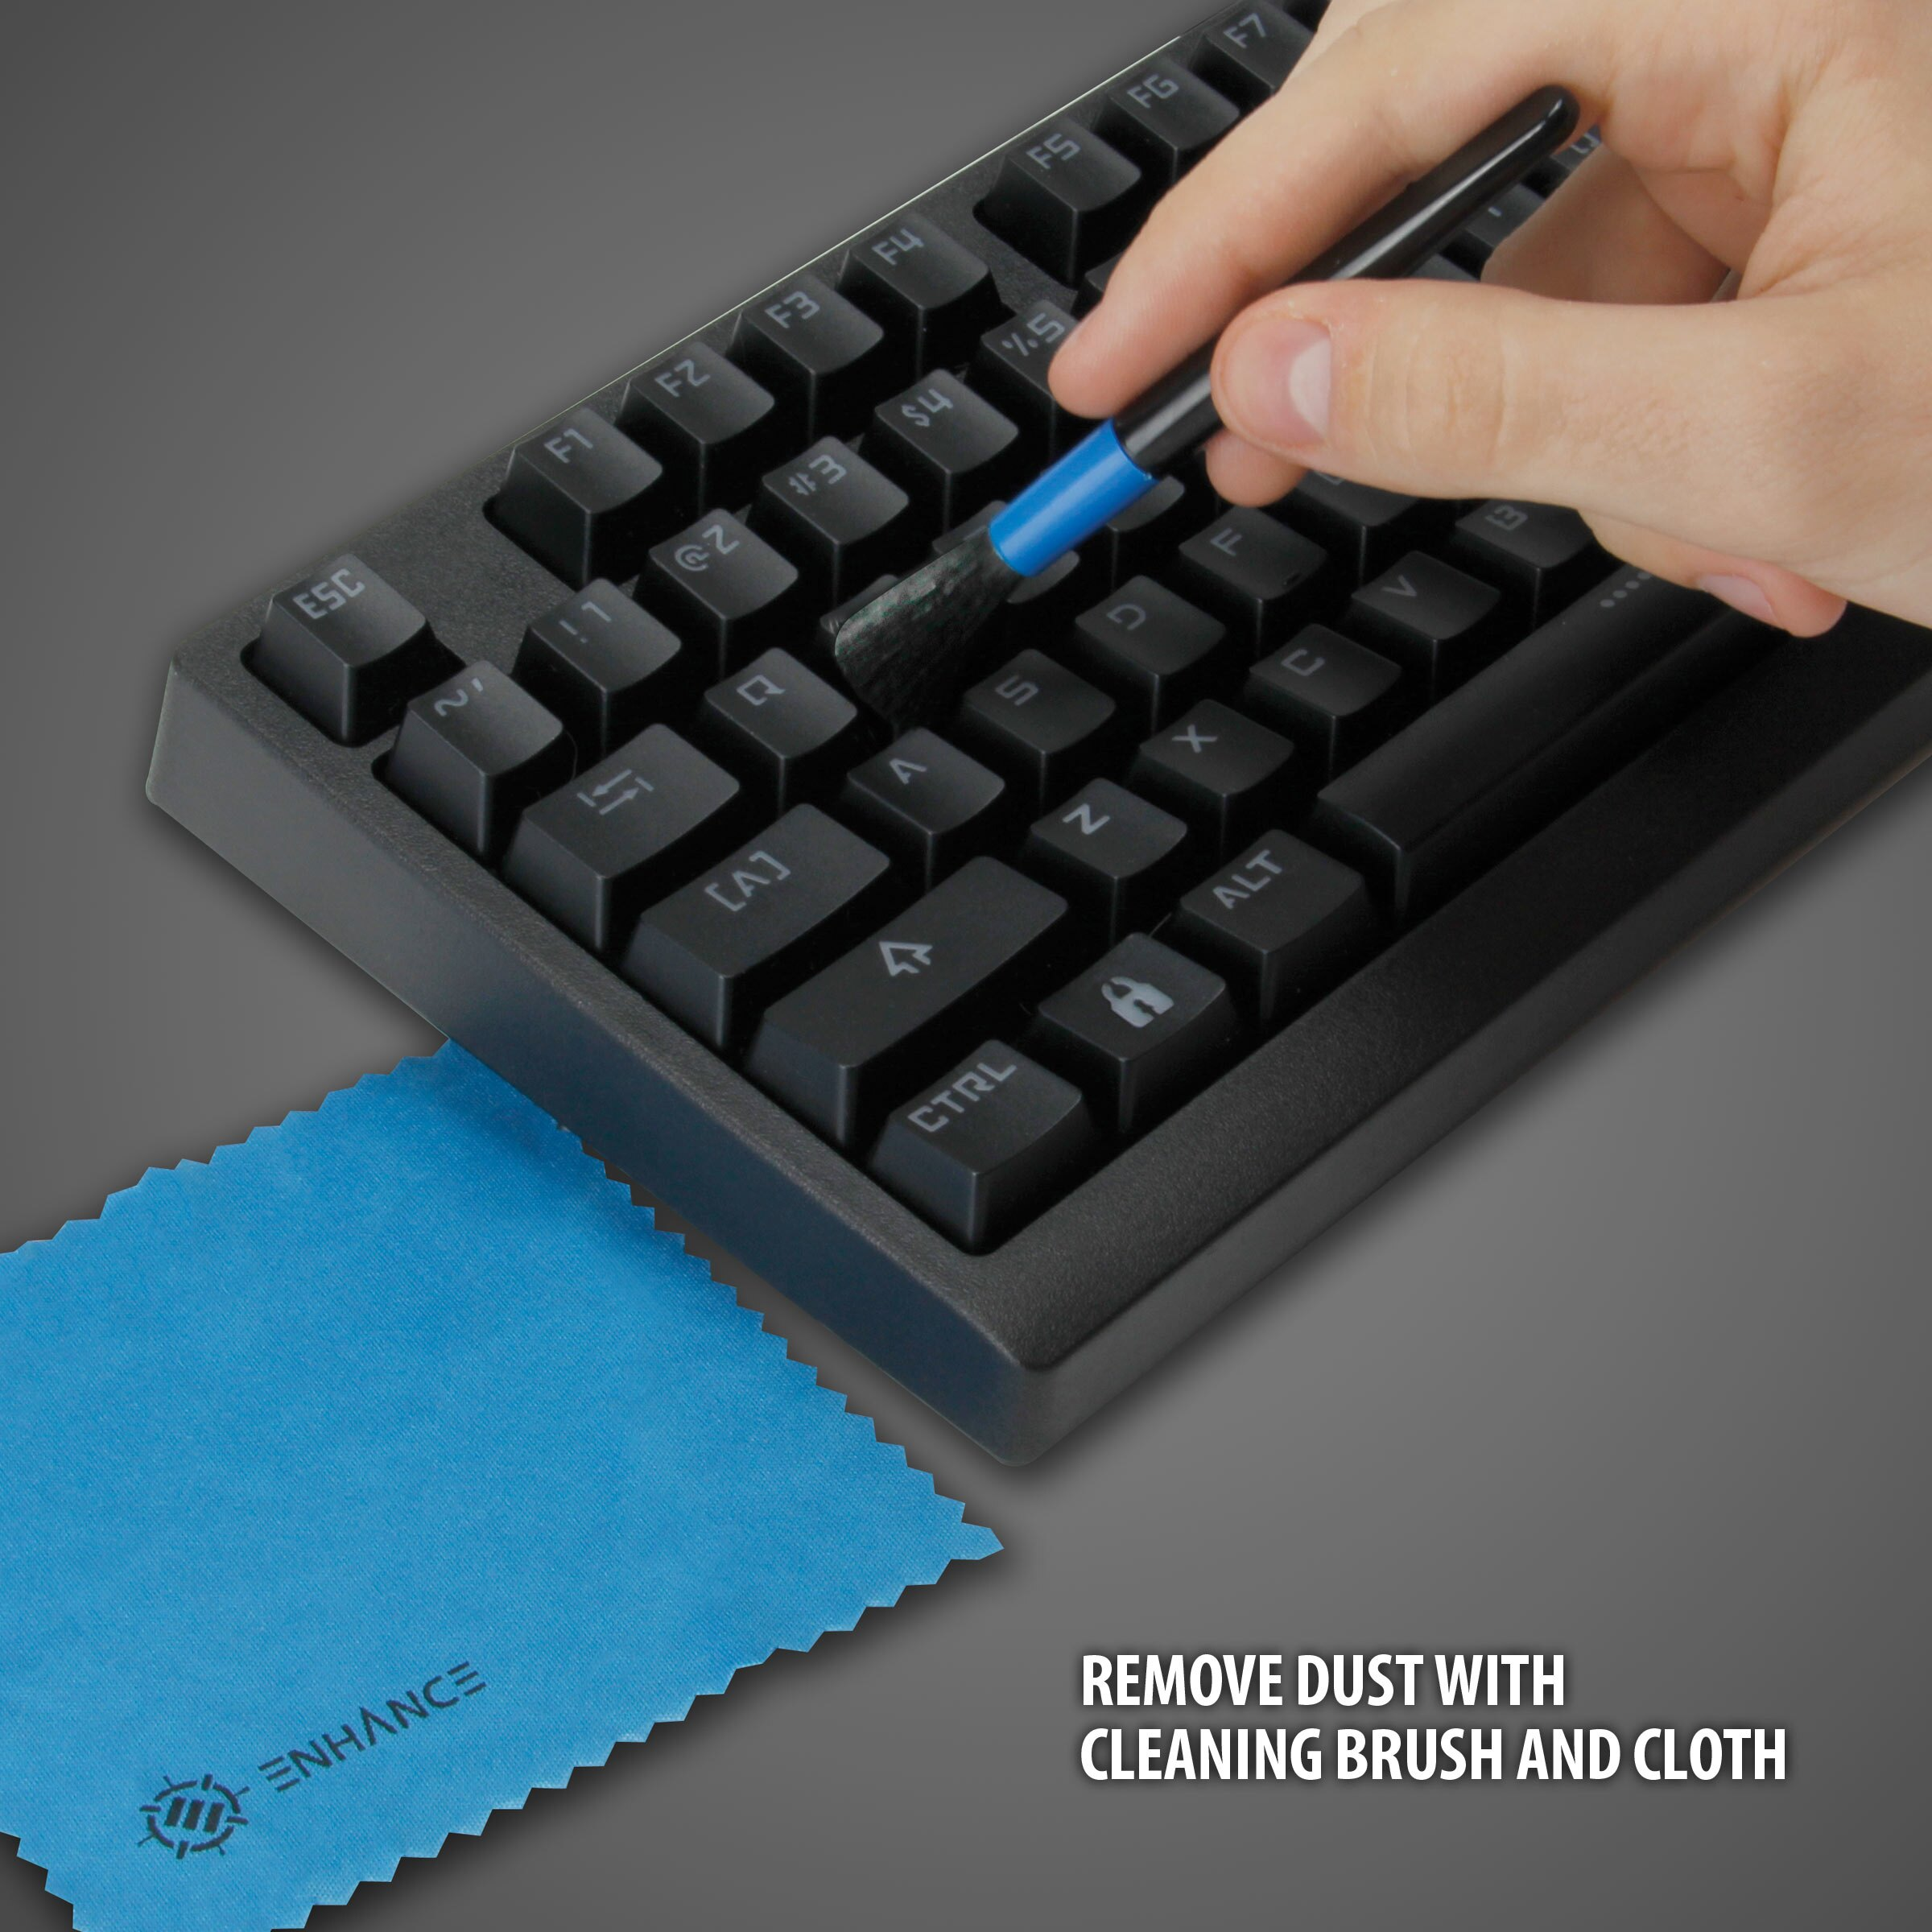 ENHANCE Mechanical Keyboard & Mod Kit ? With Keycap Puller , O-Ring Dampeners , Brush , Cloth & Bag 6